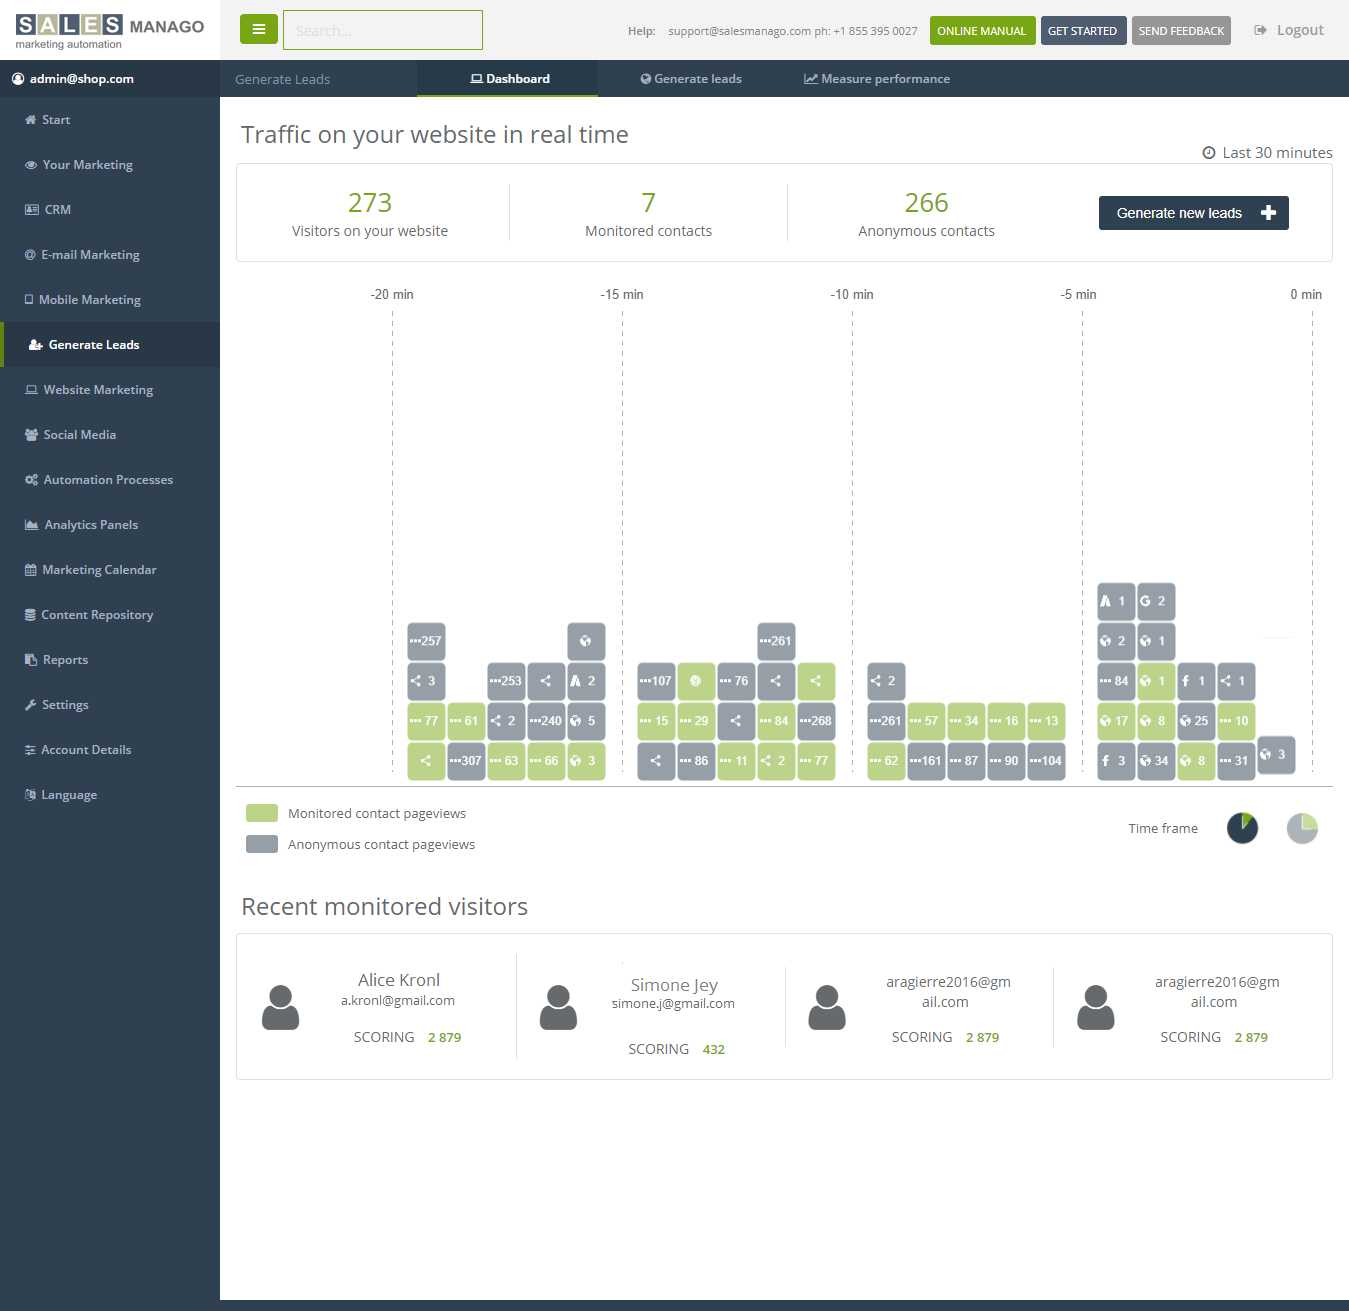 Ein Dashboard mit der allgemeinen Analyse bei SALESmanago Marketing Automation